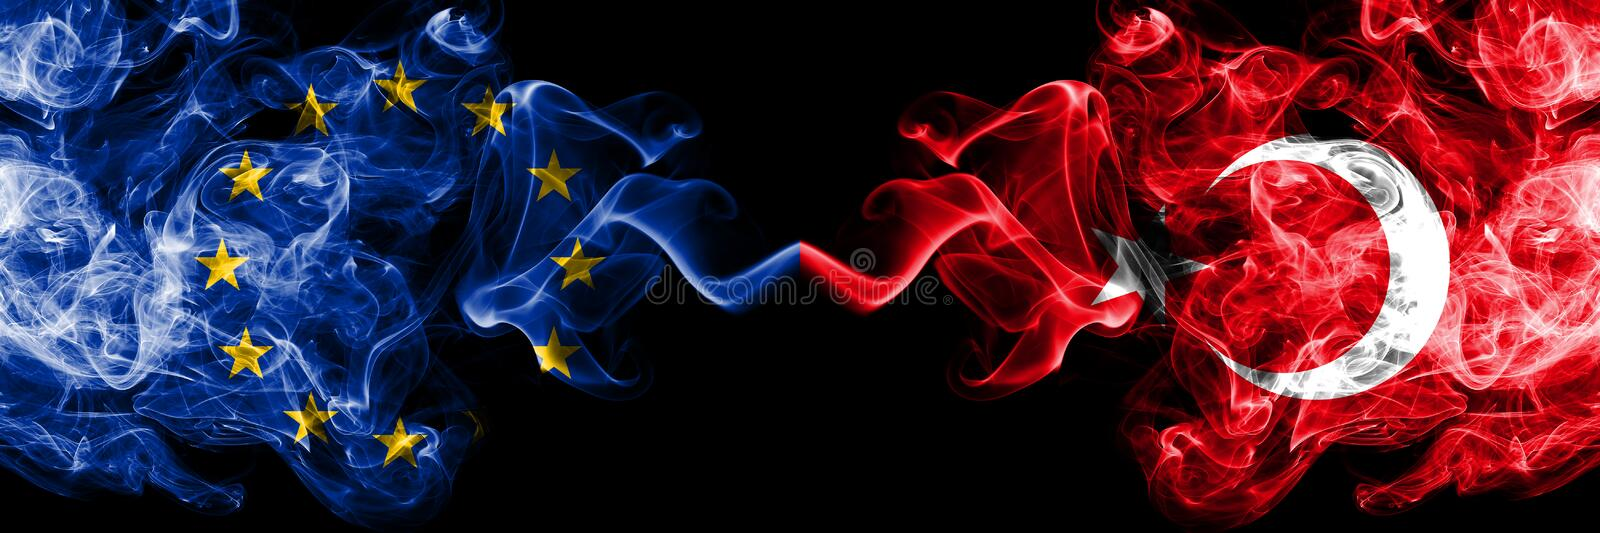 European Union vs Turkey, Turkish smoke flags placed side by side. Thick colored silky smoke flags of EU and Turkey, Turkish.  royalty free stock photos